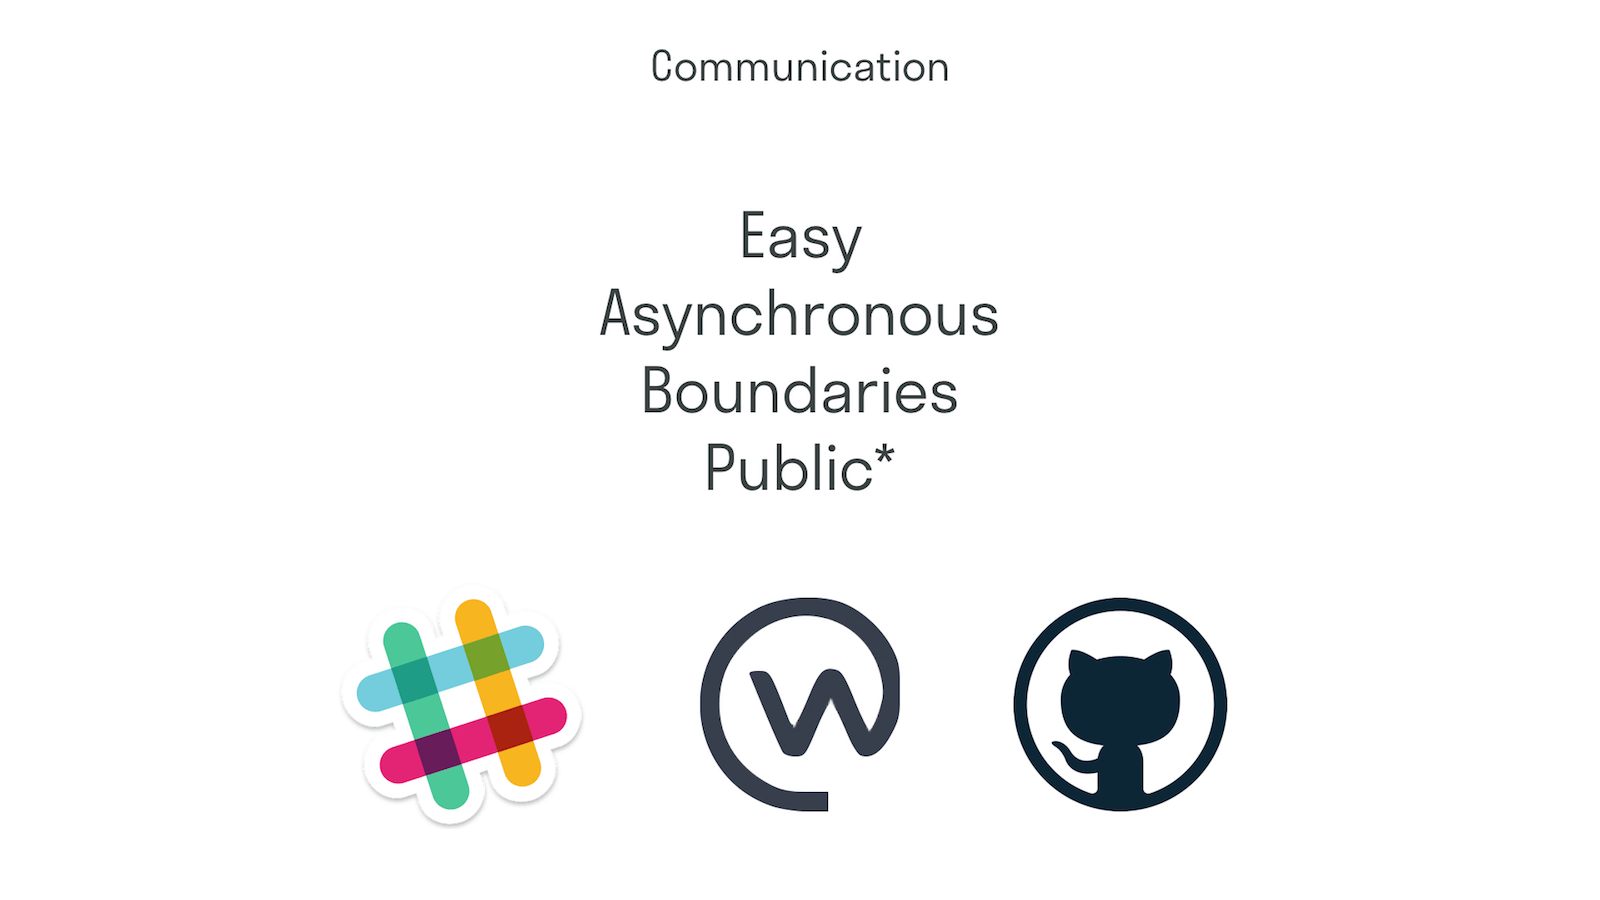 what makes a good tech team great we aim to keep communication easy asynchronous non disruptive and public